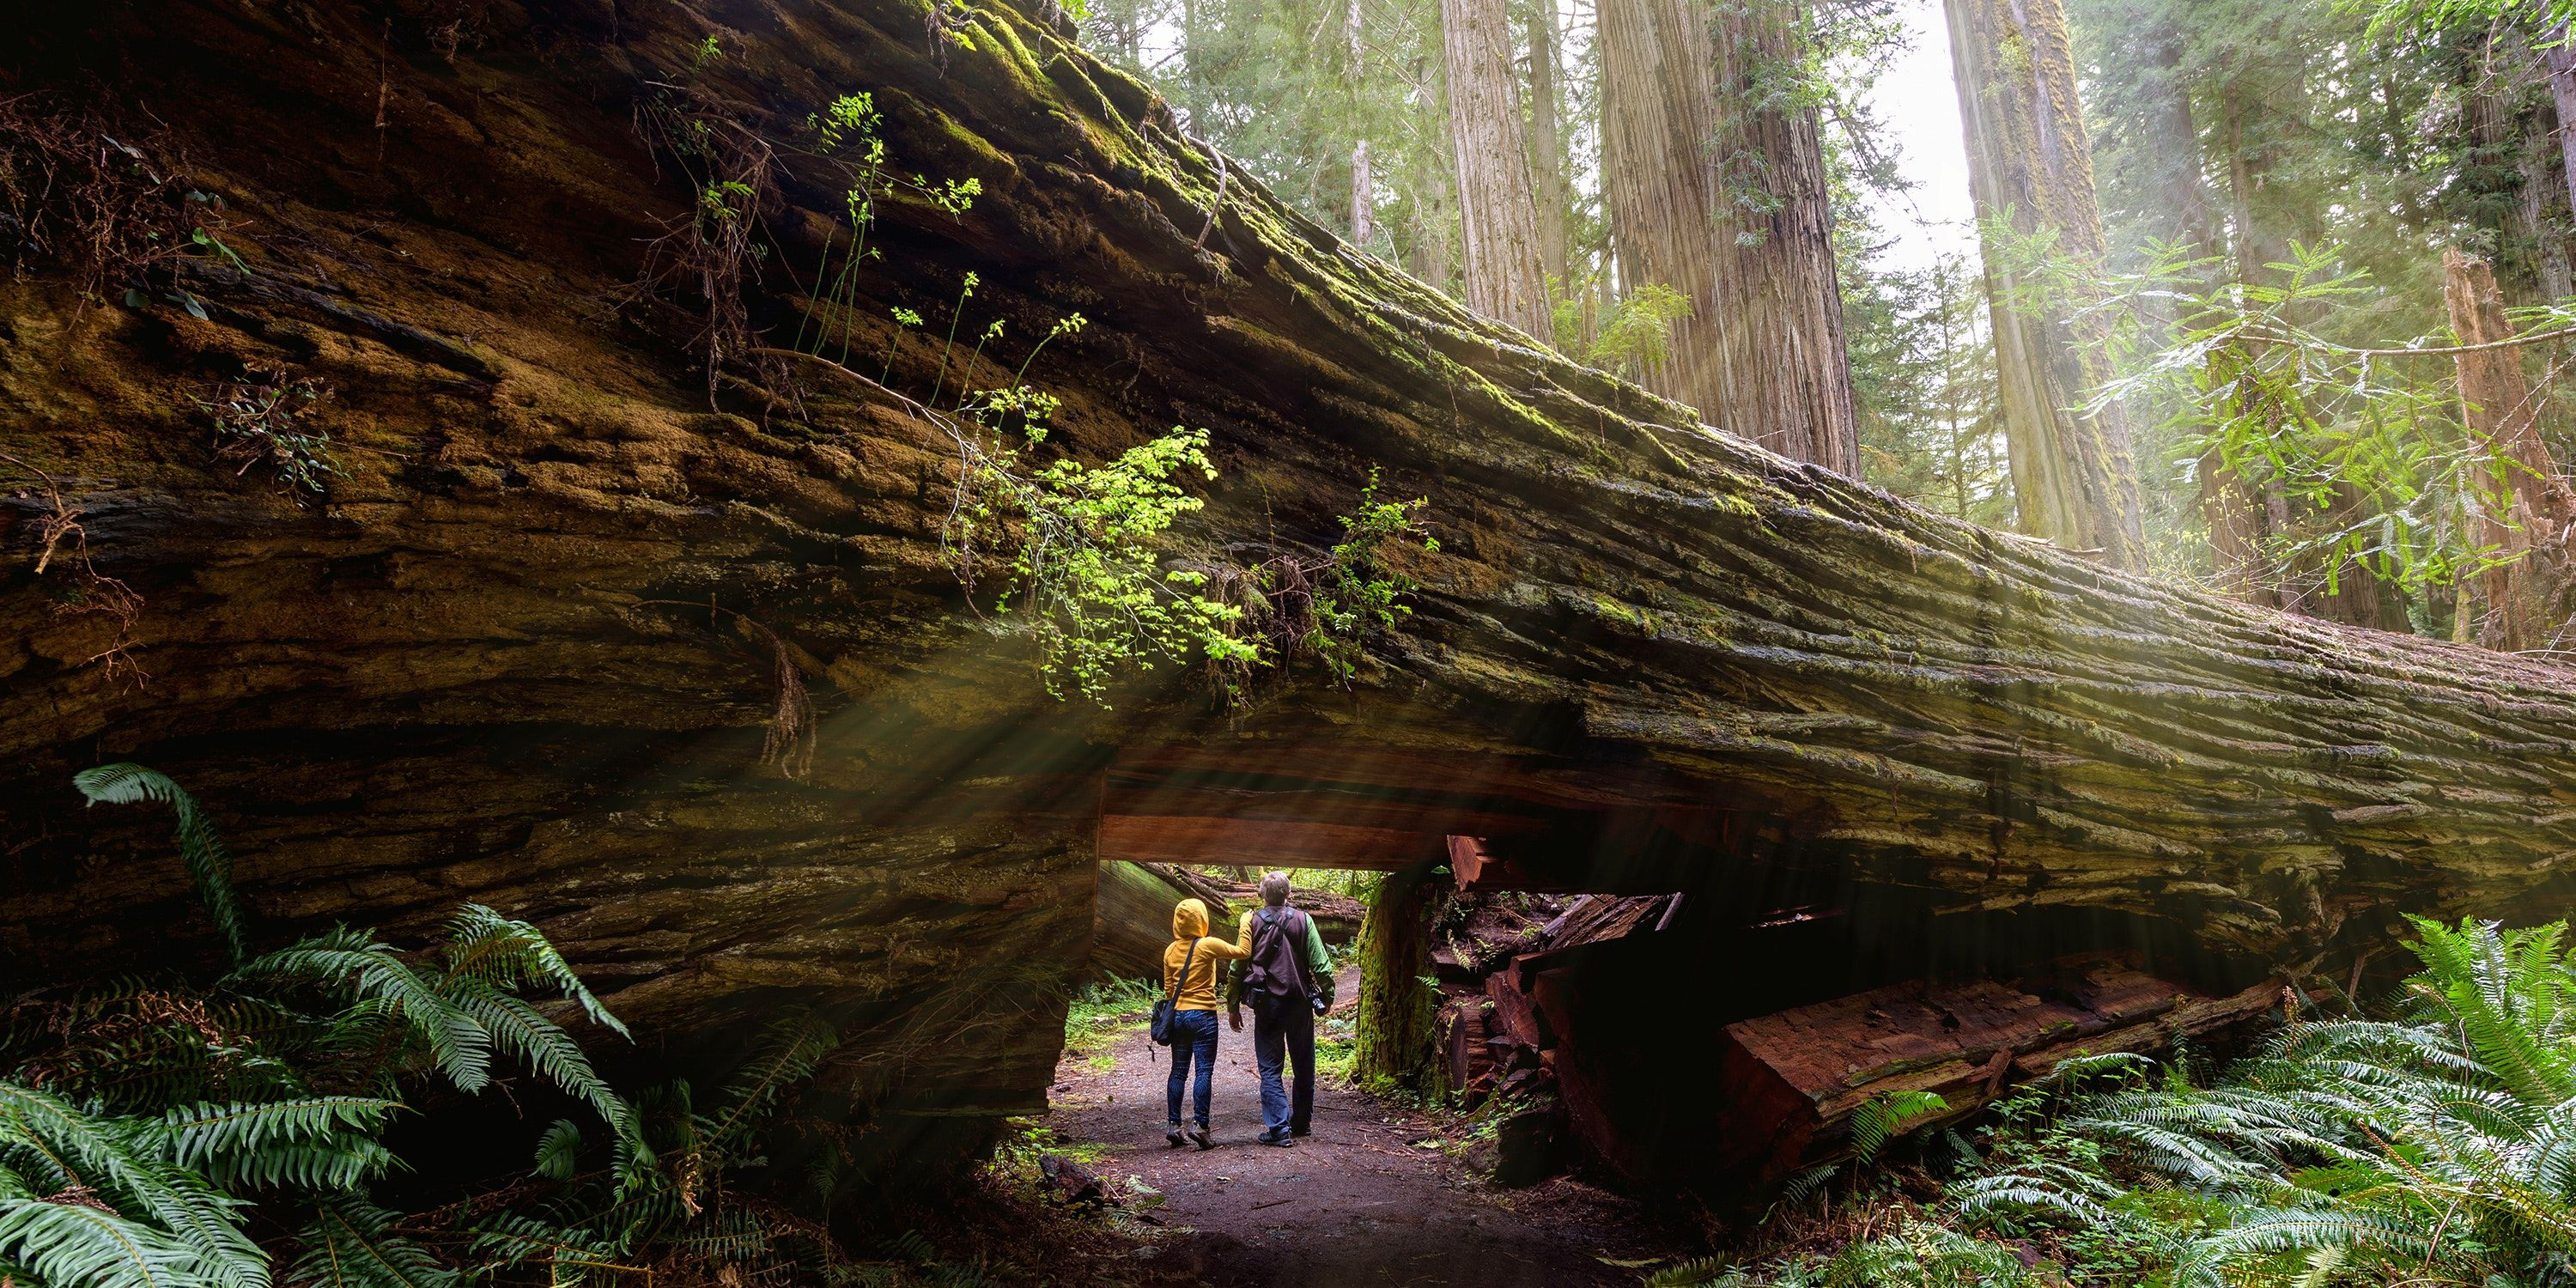 Best Day Hikes in California: From Easiest to Hardest